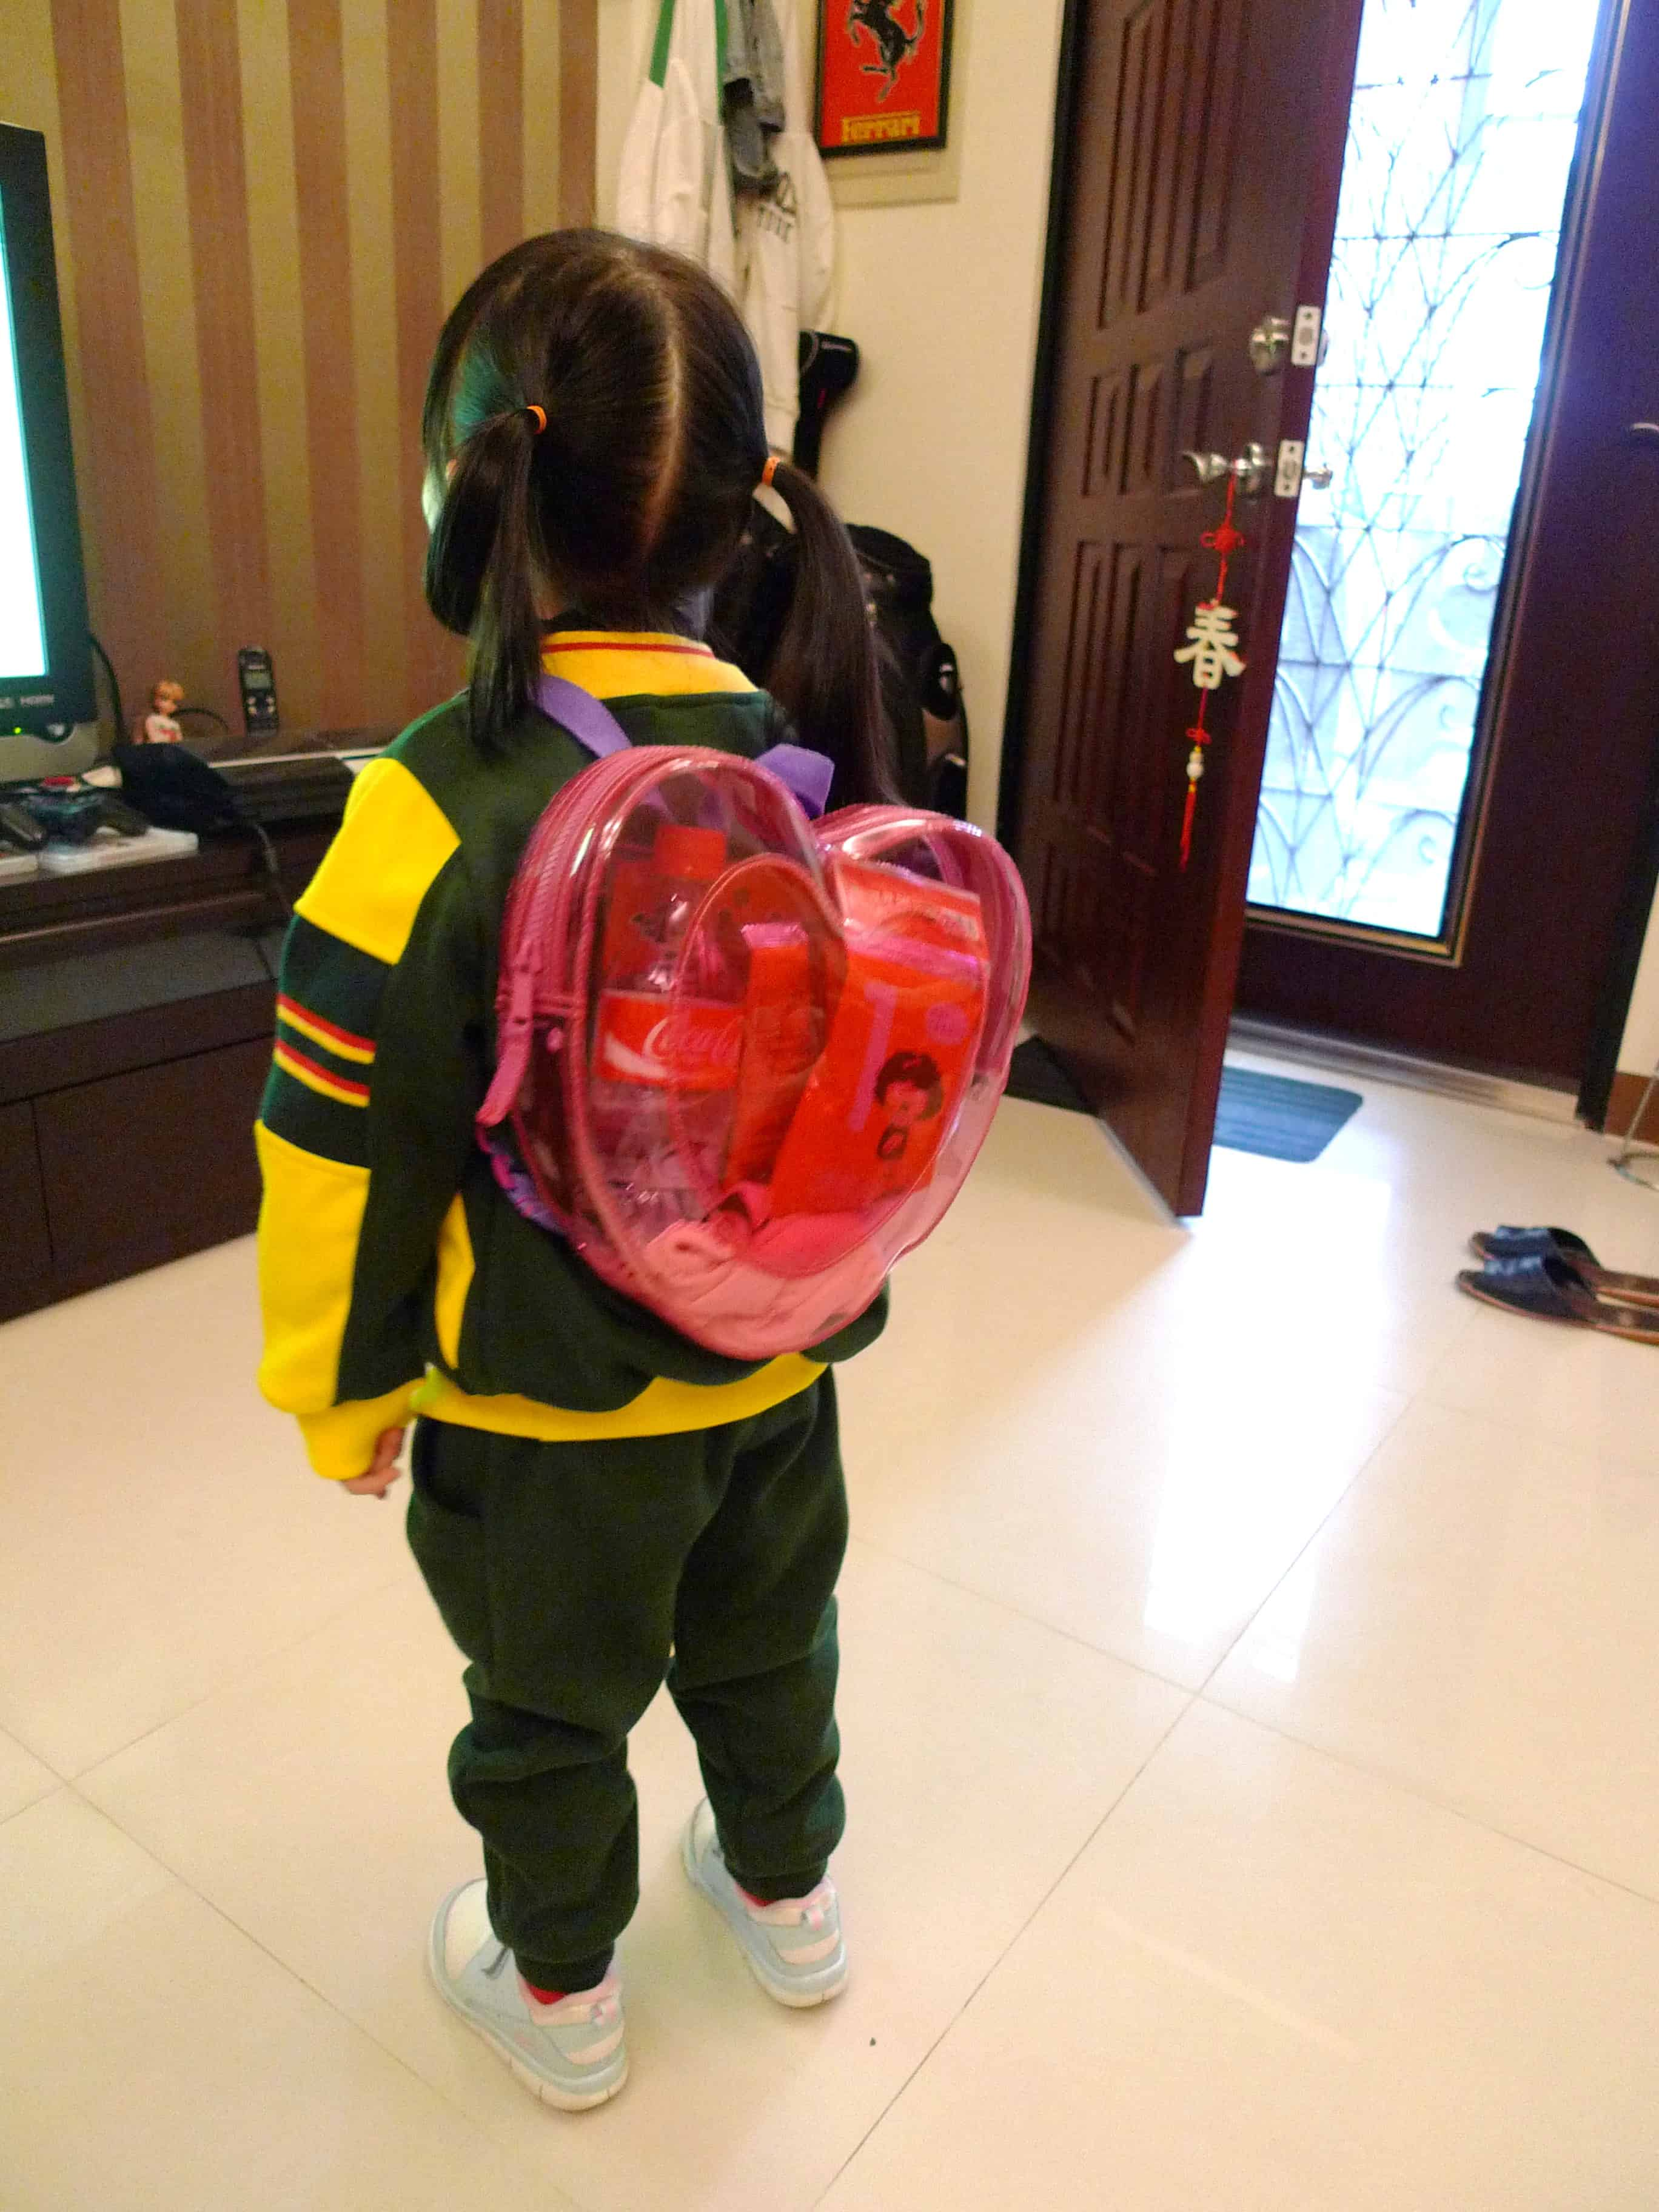 Child with Bag - Best Tips For Traveling With Kids